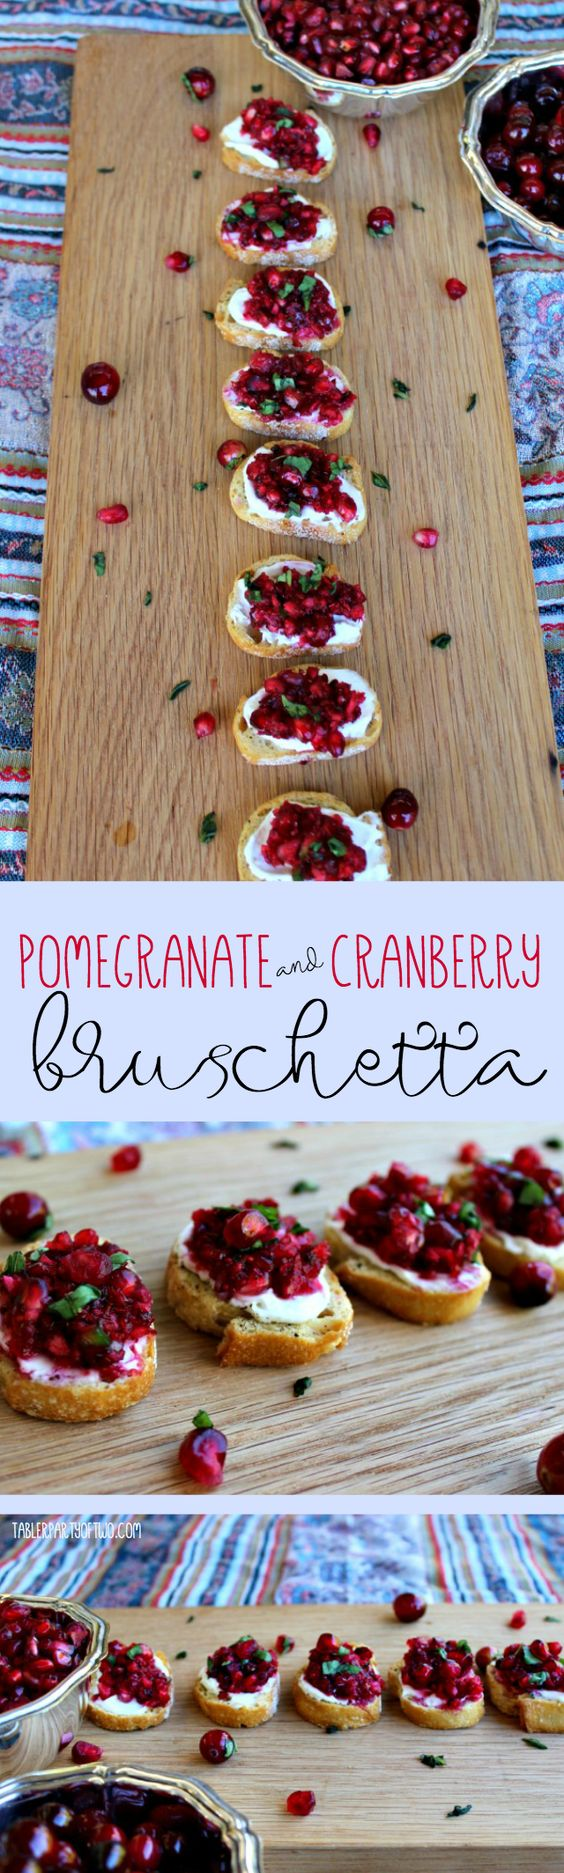 Pomegranate and Cranberry Bruschetta.